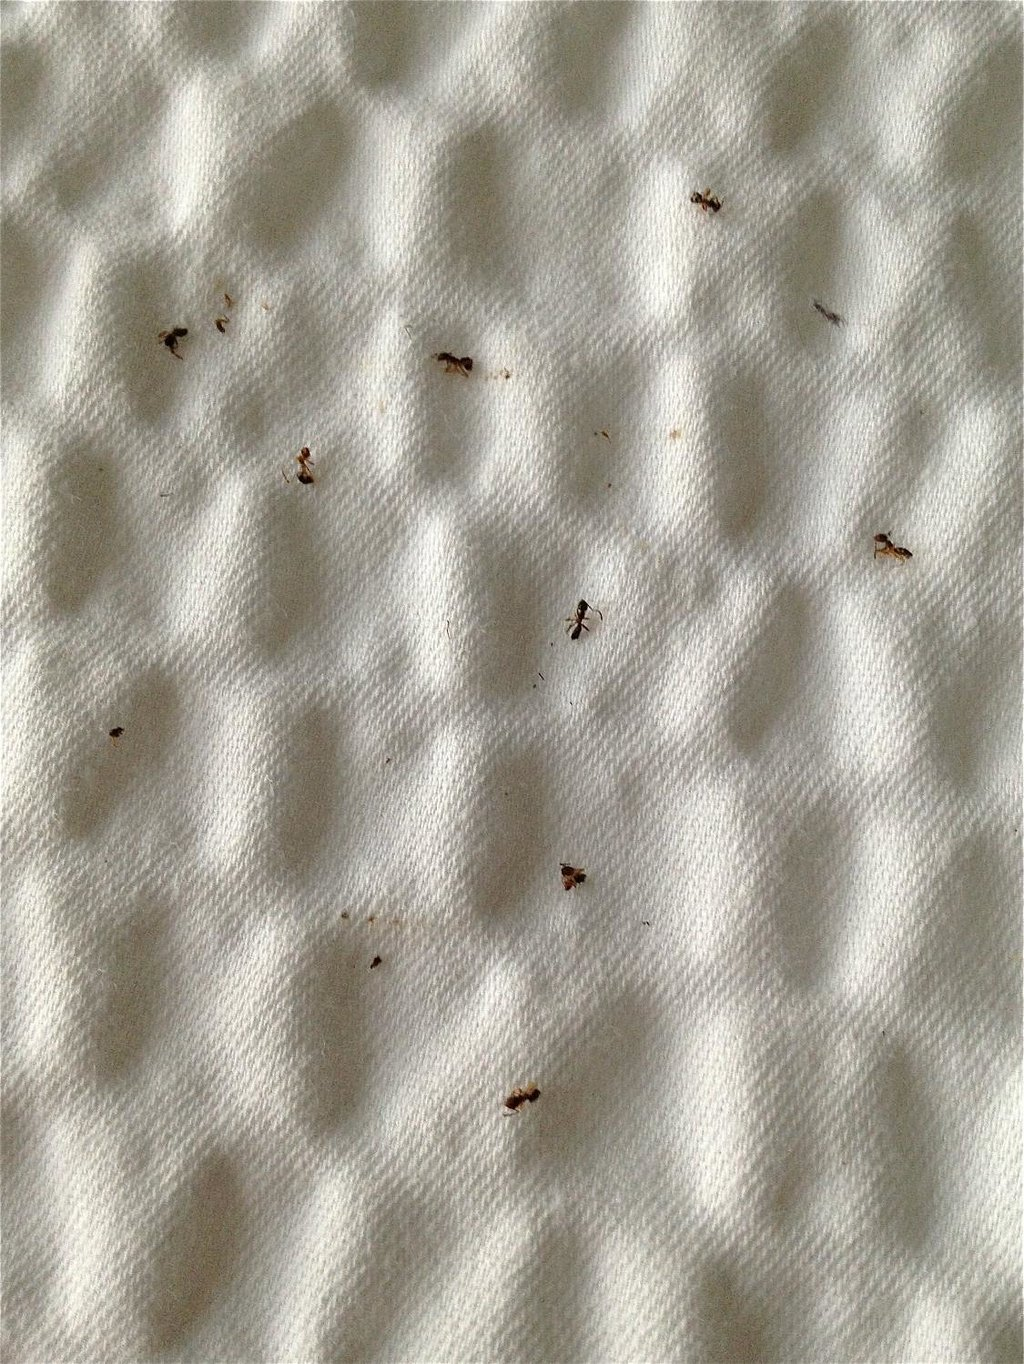 Ant outbreak Room 228 Aug. 25-26, 2013